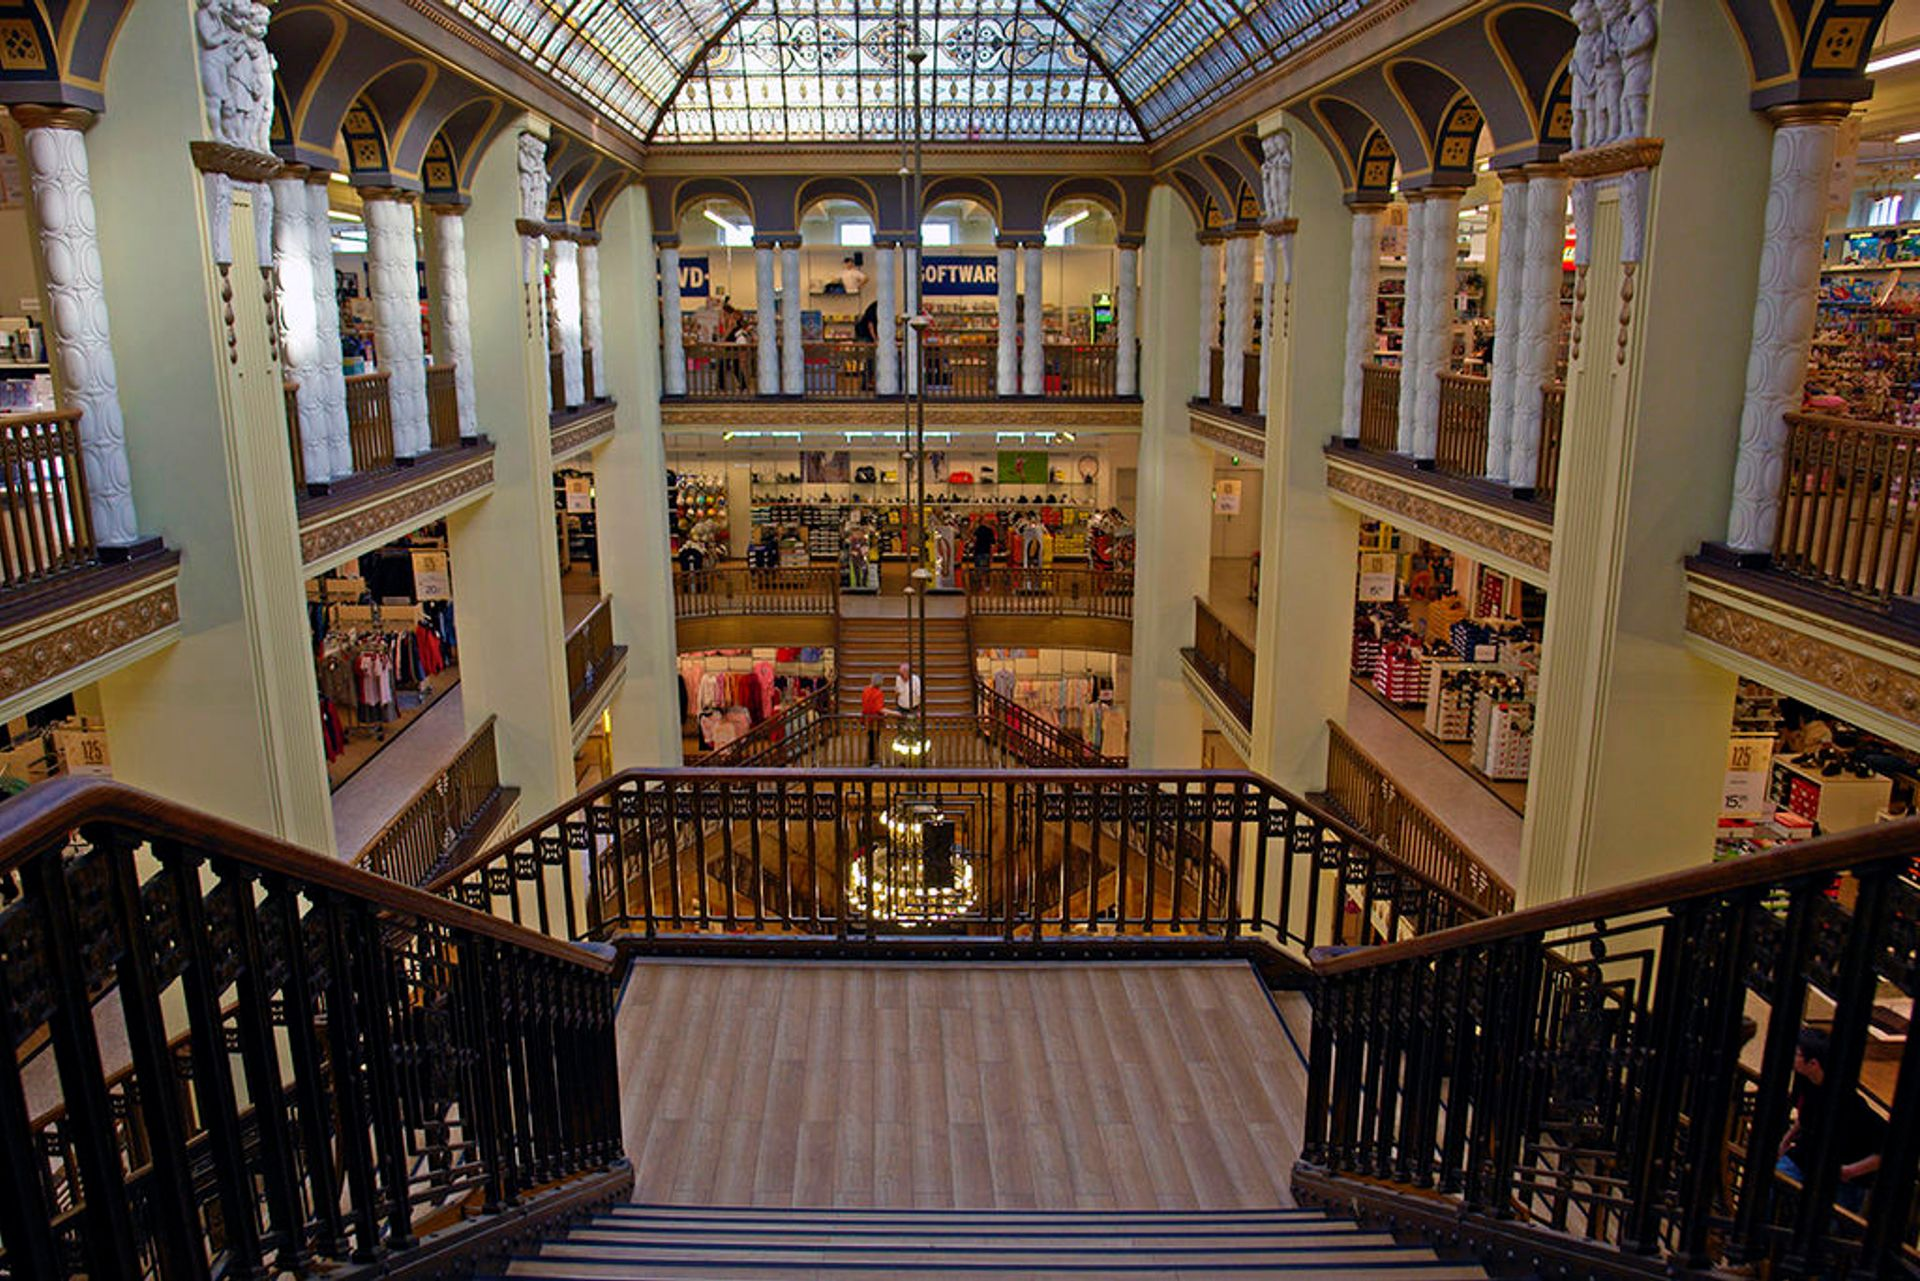 An abandoned department store in Görlitz that was the set for the film The Grand Budapest Hotel will be renovated with the new funds for cultural projects in Germany Hans Peter Schaefer via Wikimedia